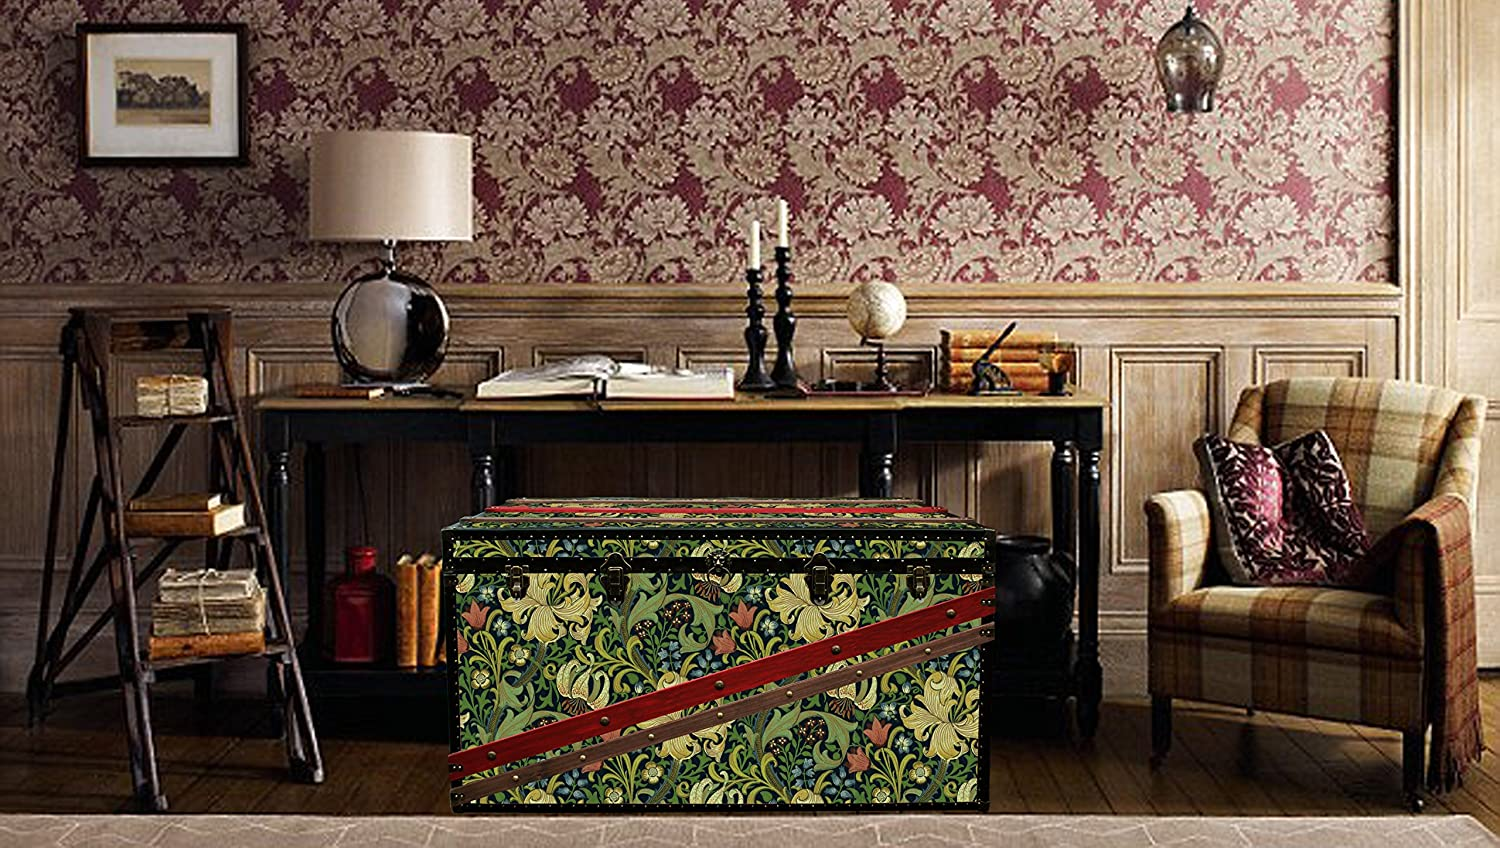 Luxury Morris Wallpaper Coffee Table Steamer Trunk Exclusive Furniture Toy Hope Chest Storage Bench Exclusive Home Decor Morris Glin Amazon Co Uk Handmade